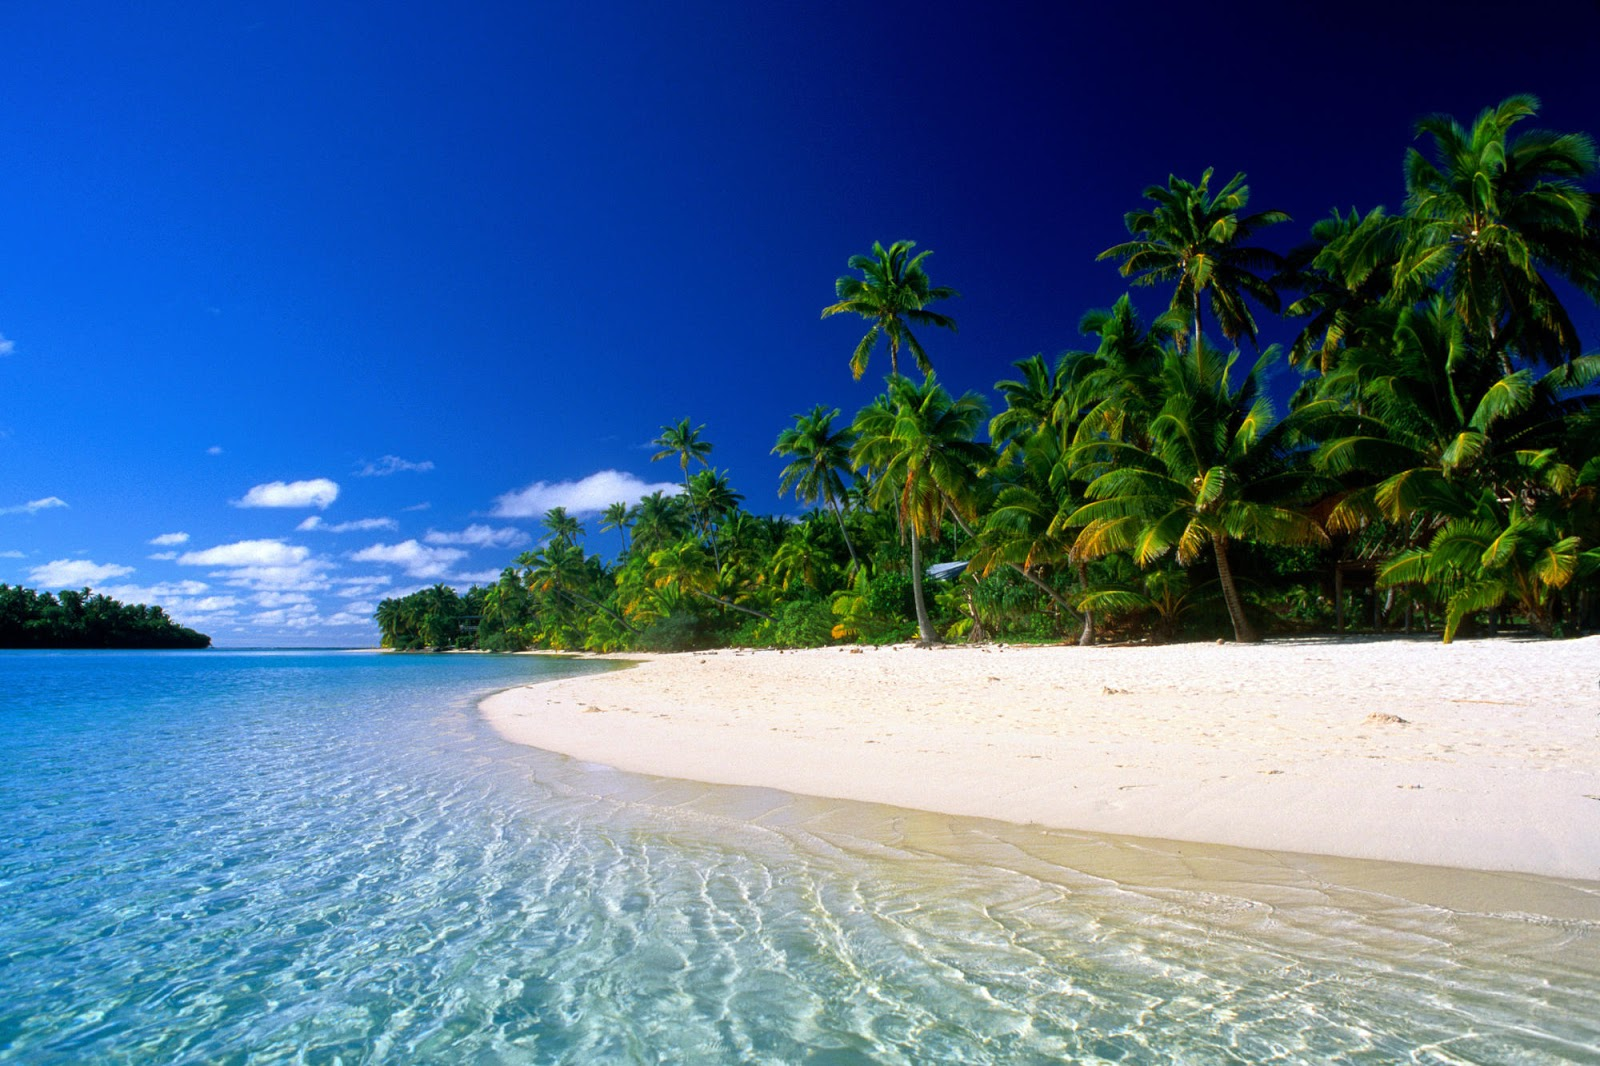 Beautiful beach wallpapers 7